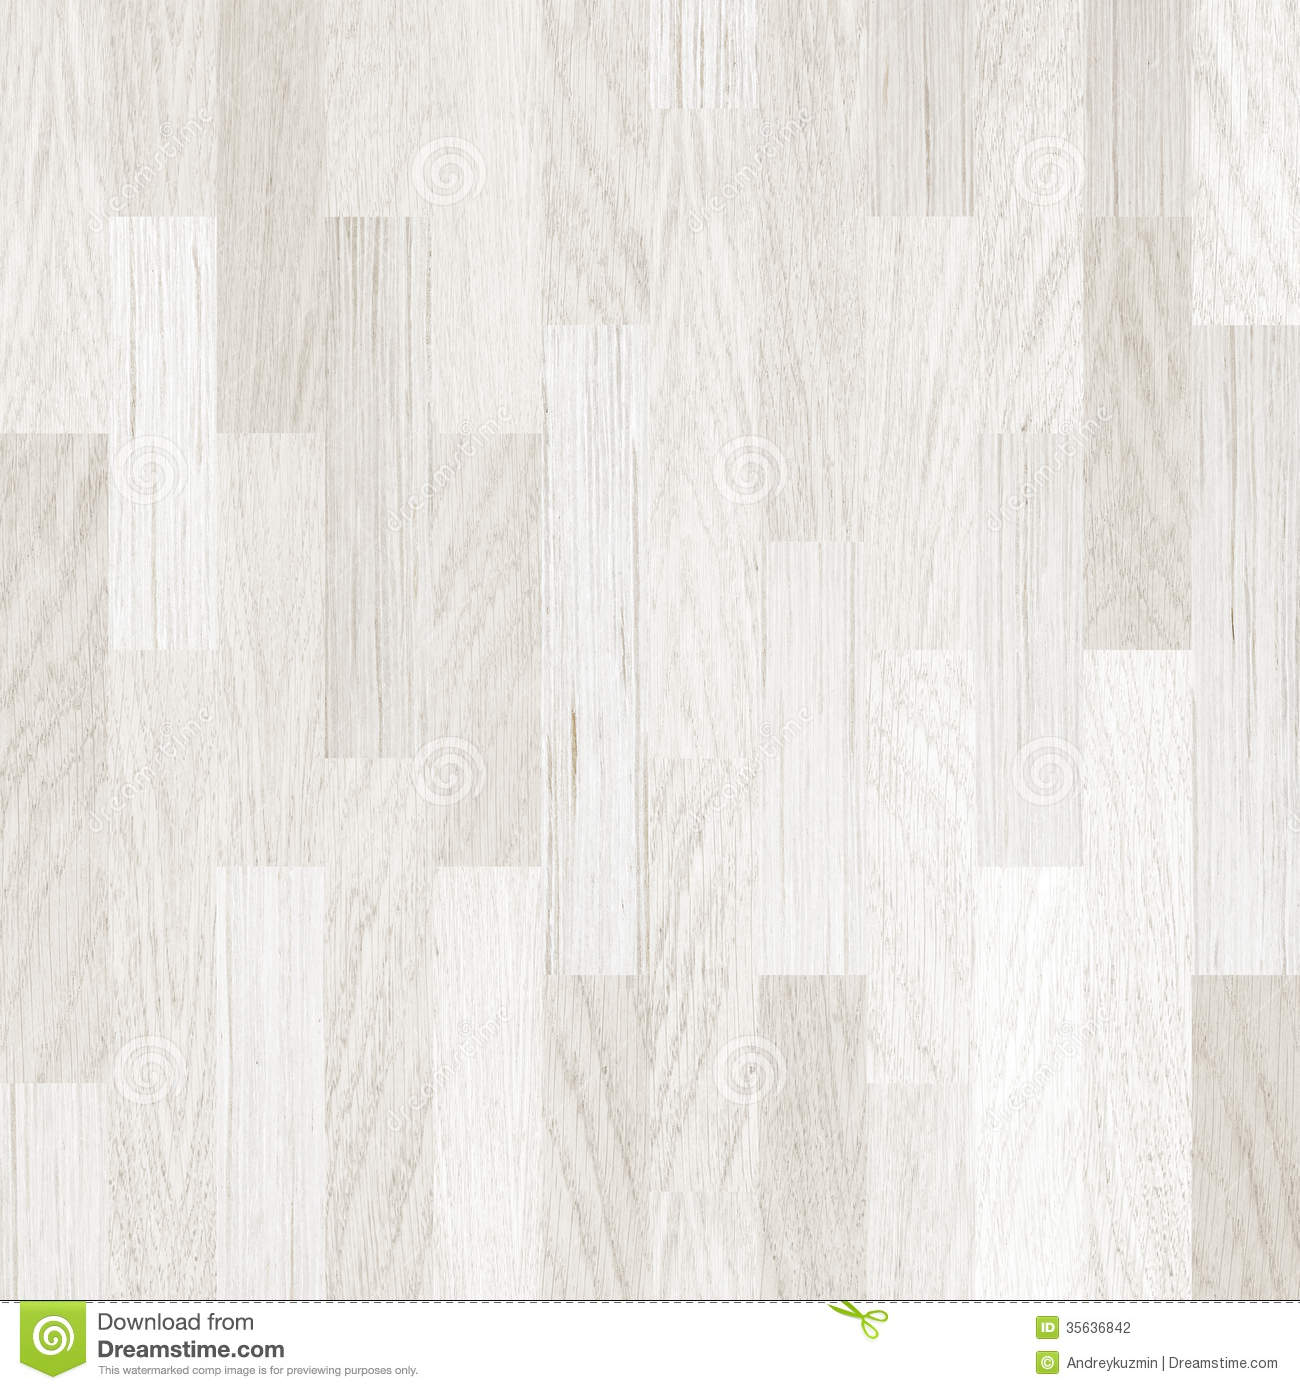 White Wooden Floor Parquet Or Flooring Stock Photography   Image